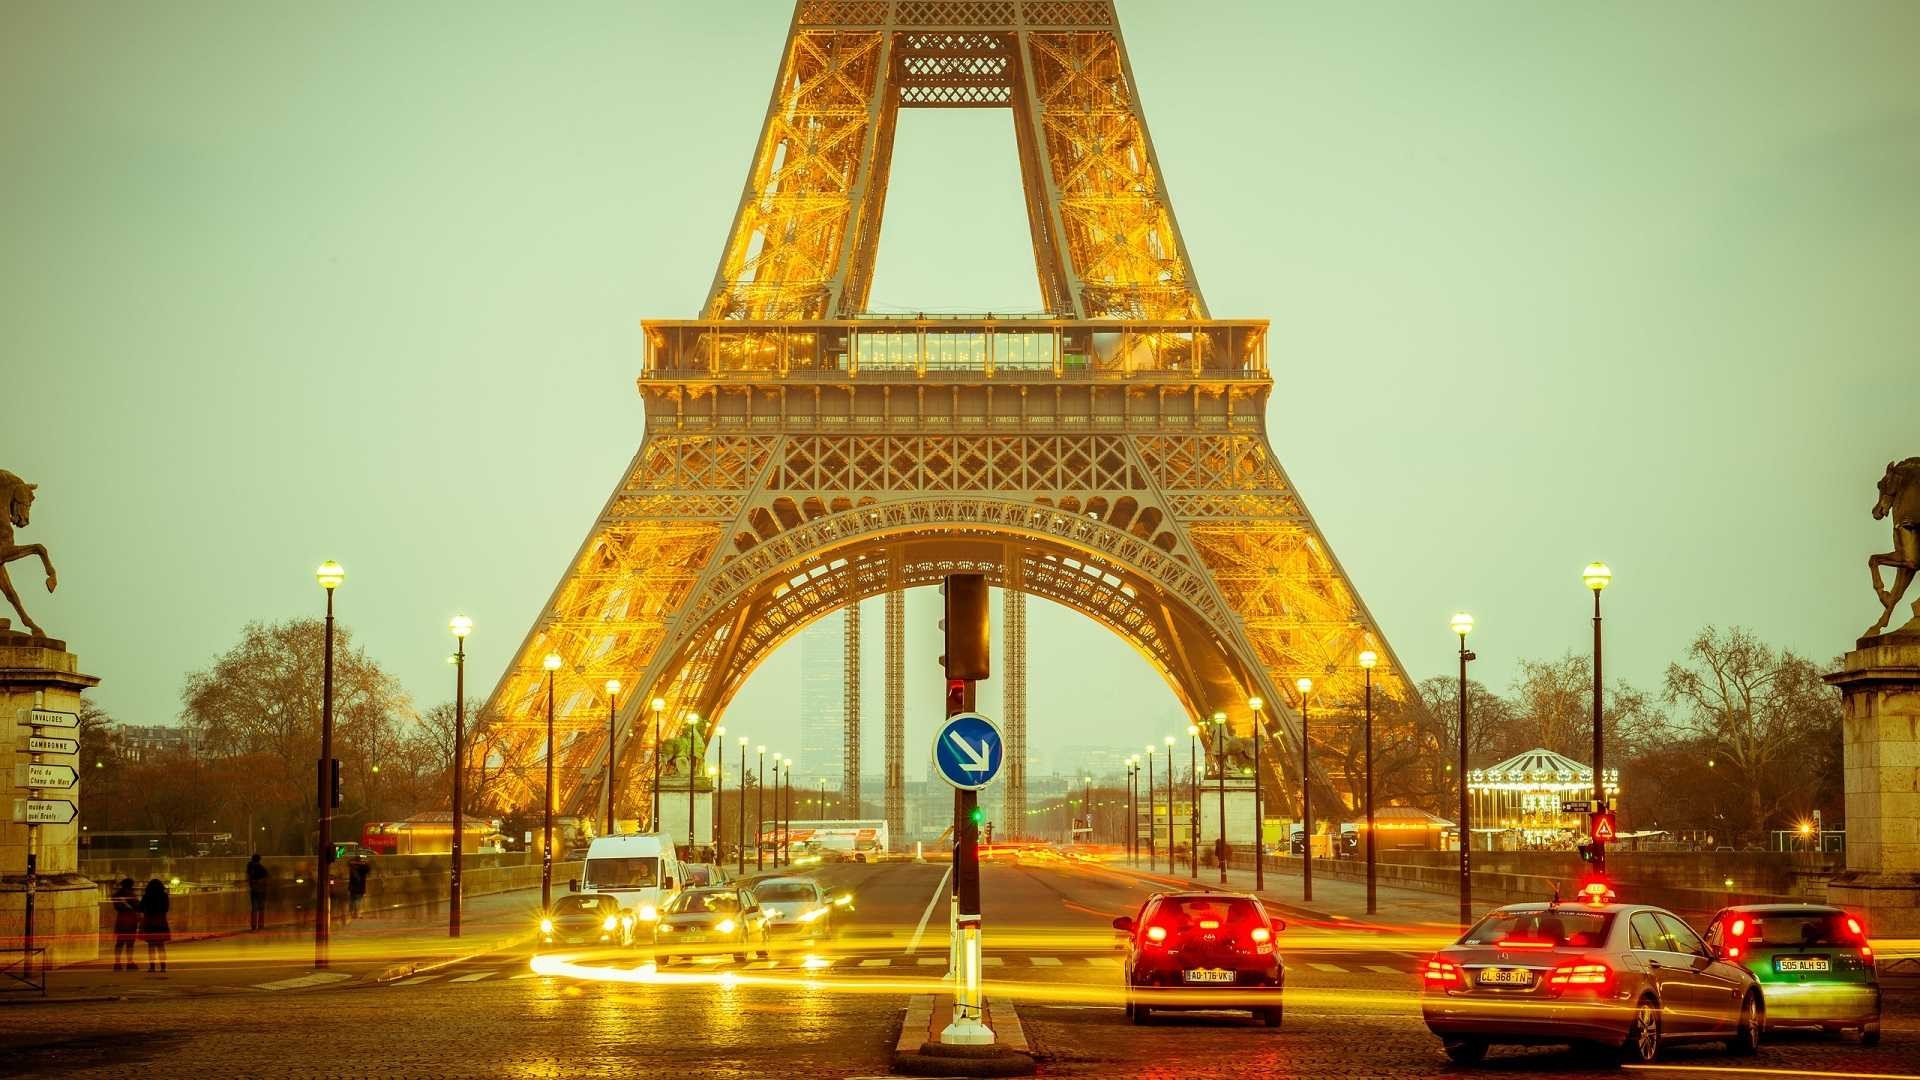 original_eiffel-tower-1156146